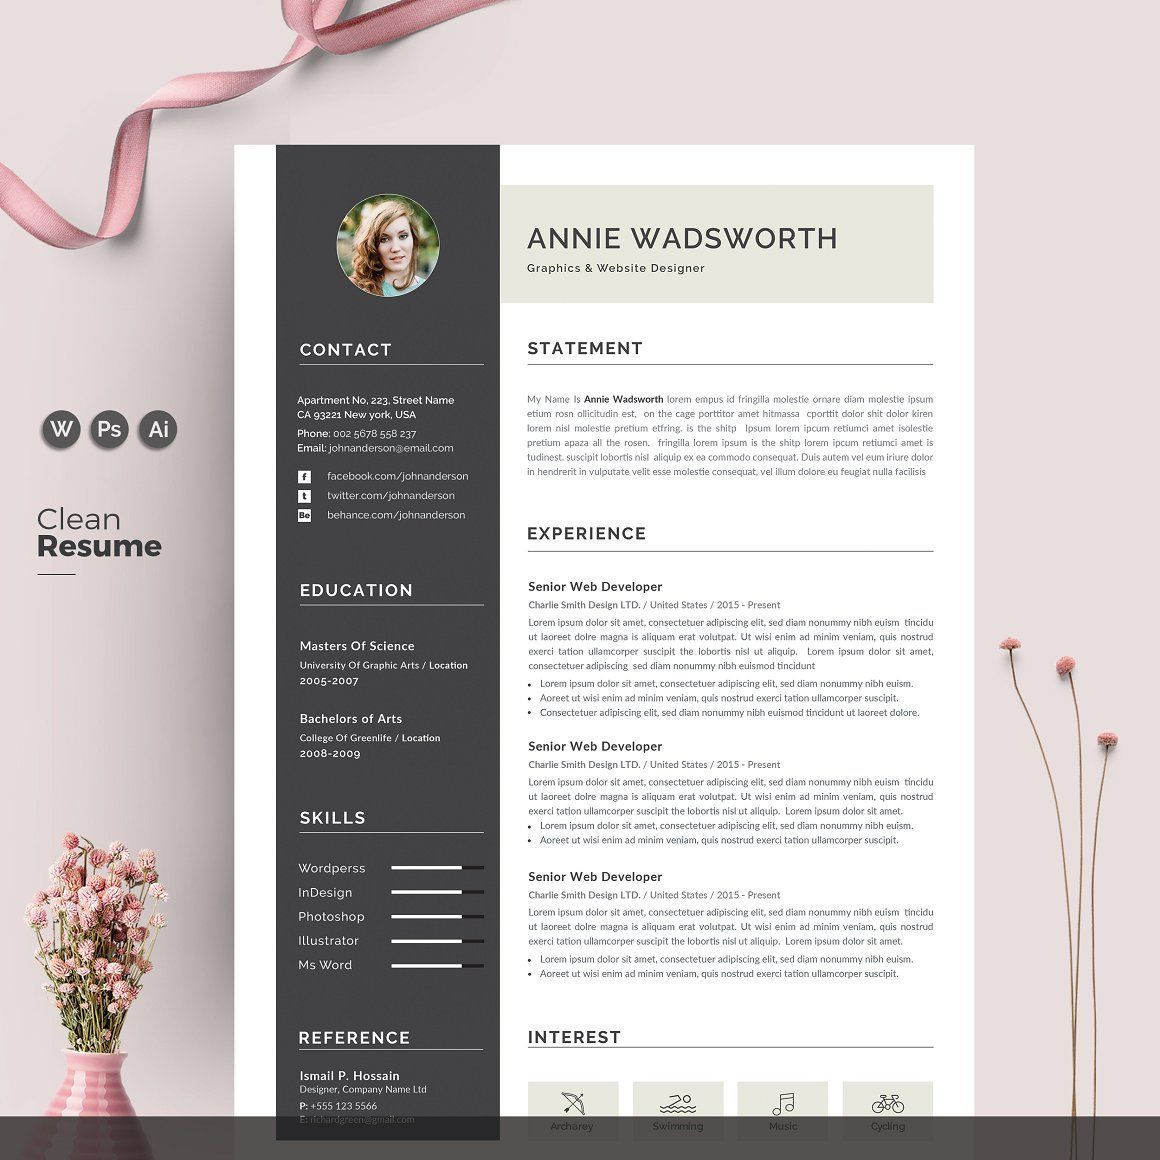 Word Resume template/CV. It is easily editable for easy